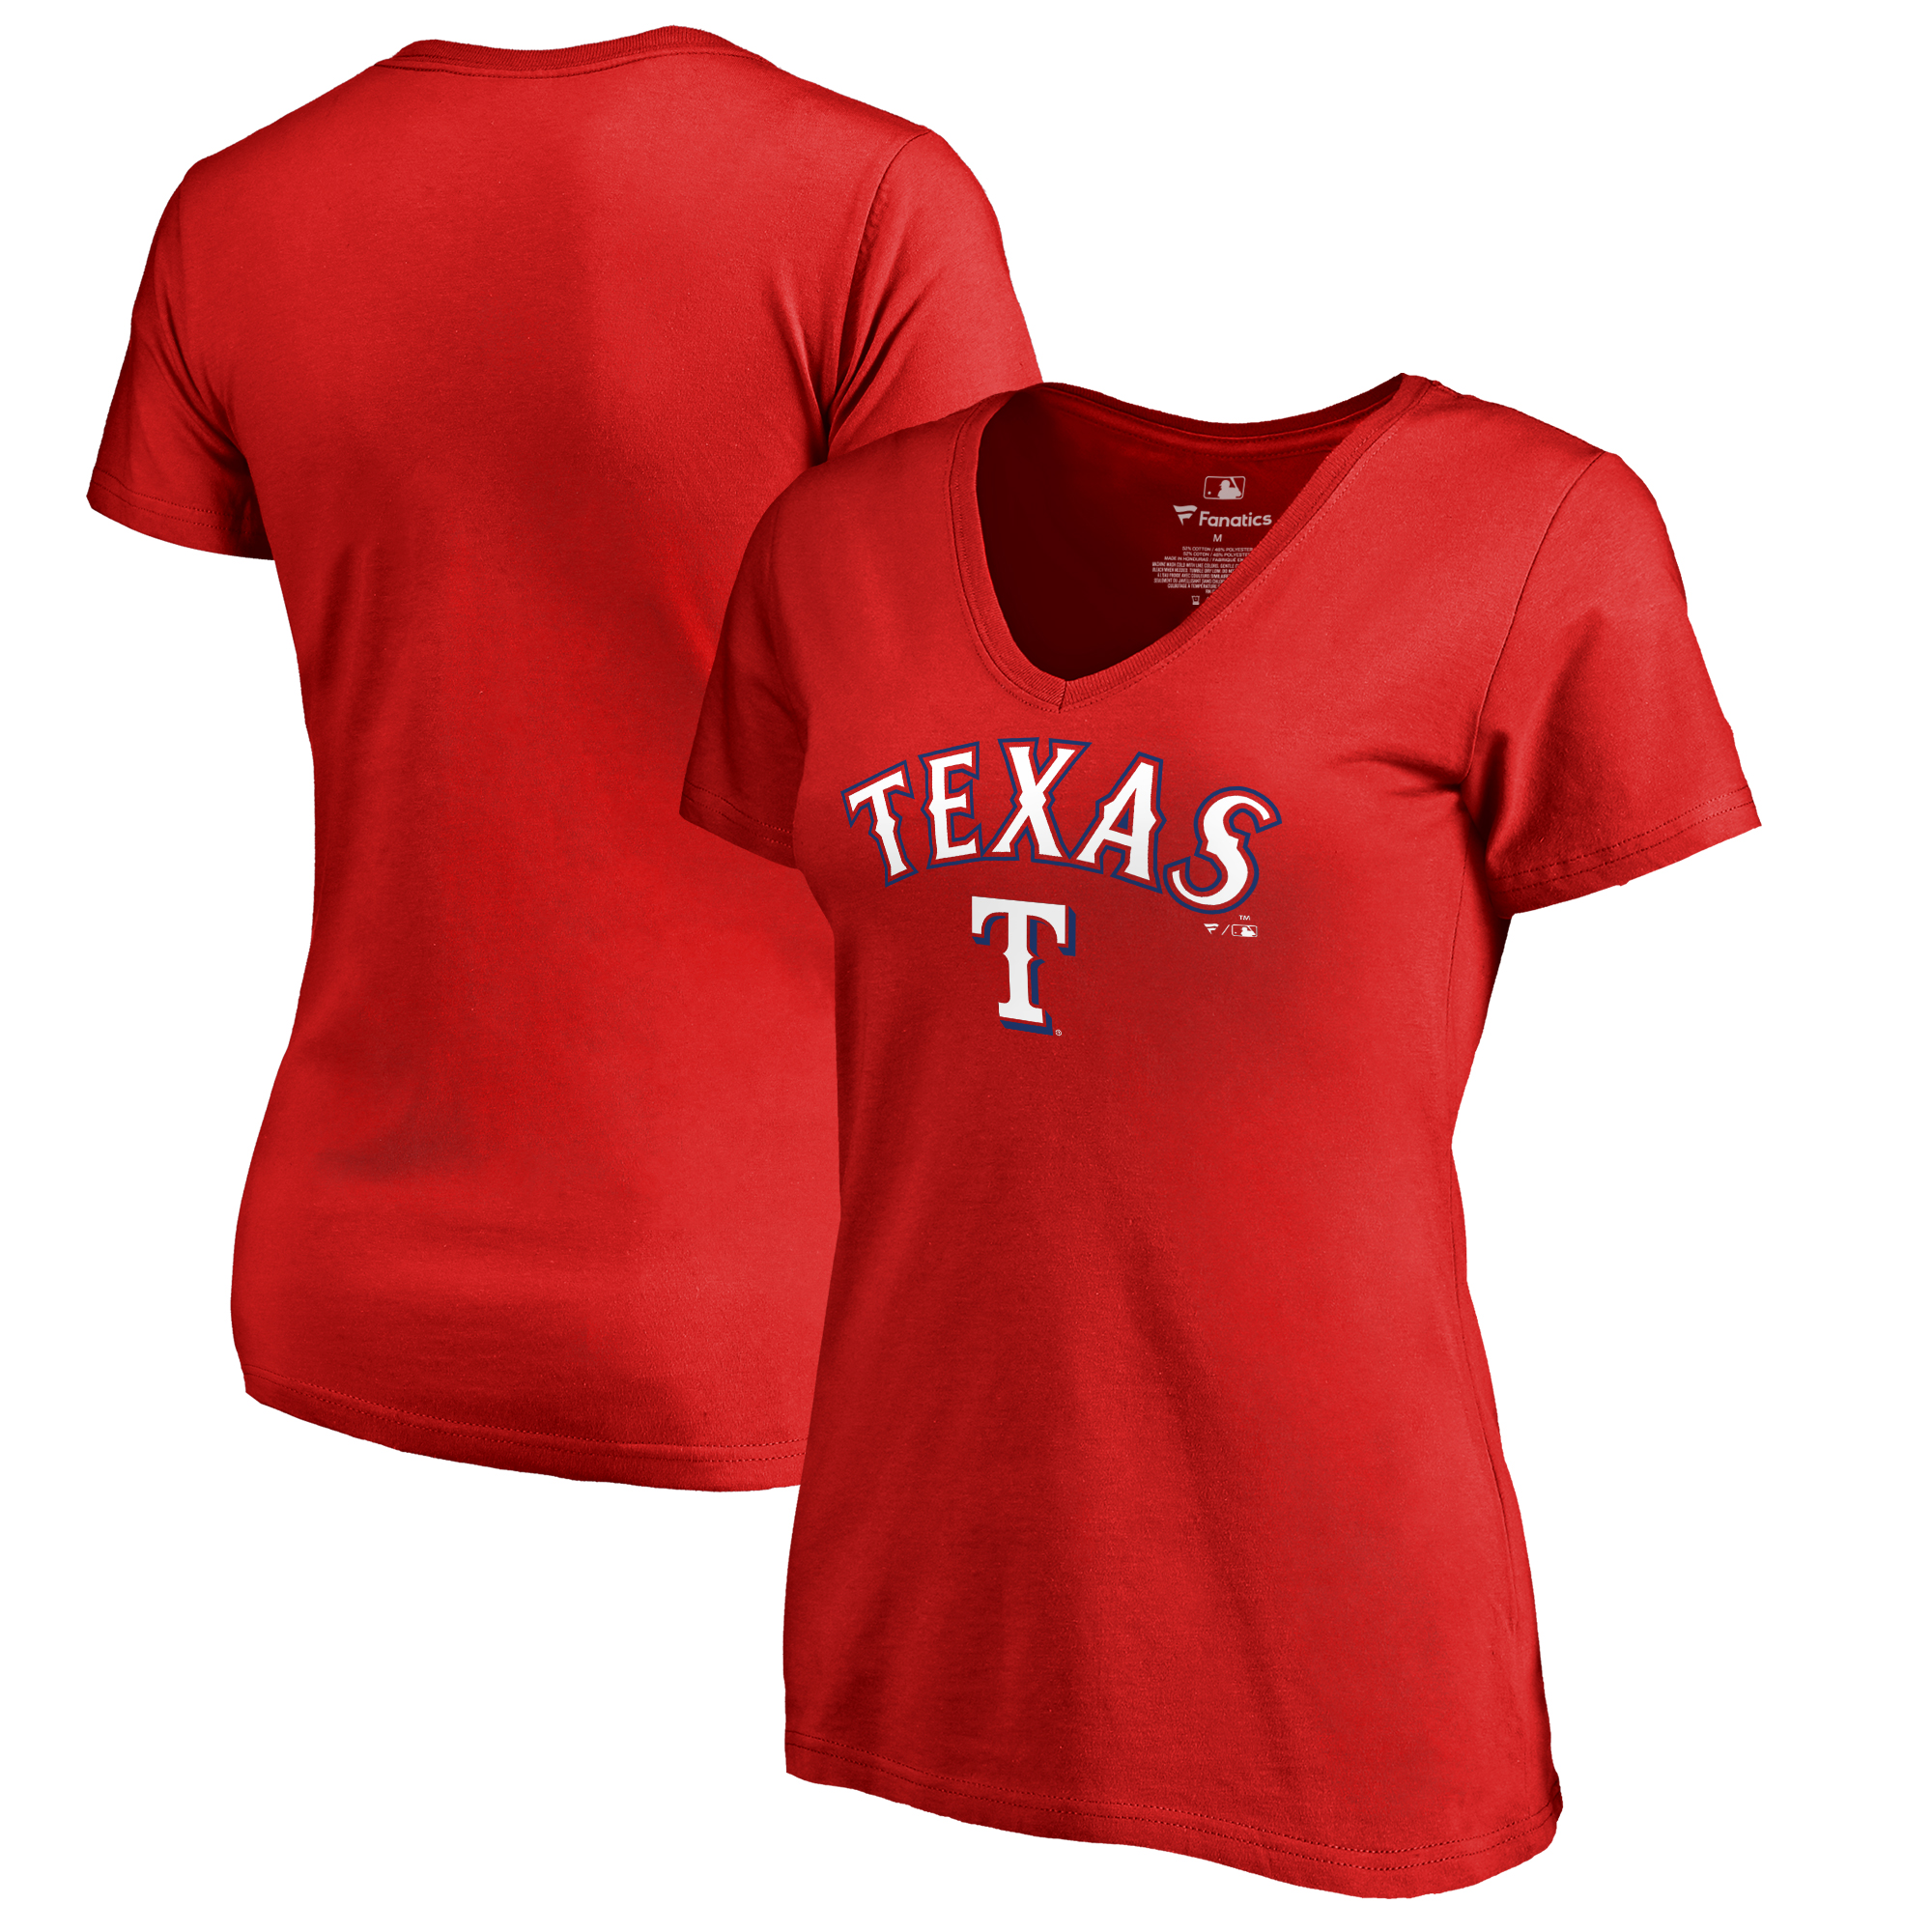 Texas Rangers Fanatics Branded Women's Plus Sizes Team Lockup T-Shirt - Red